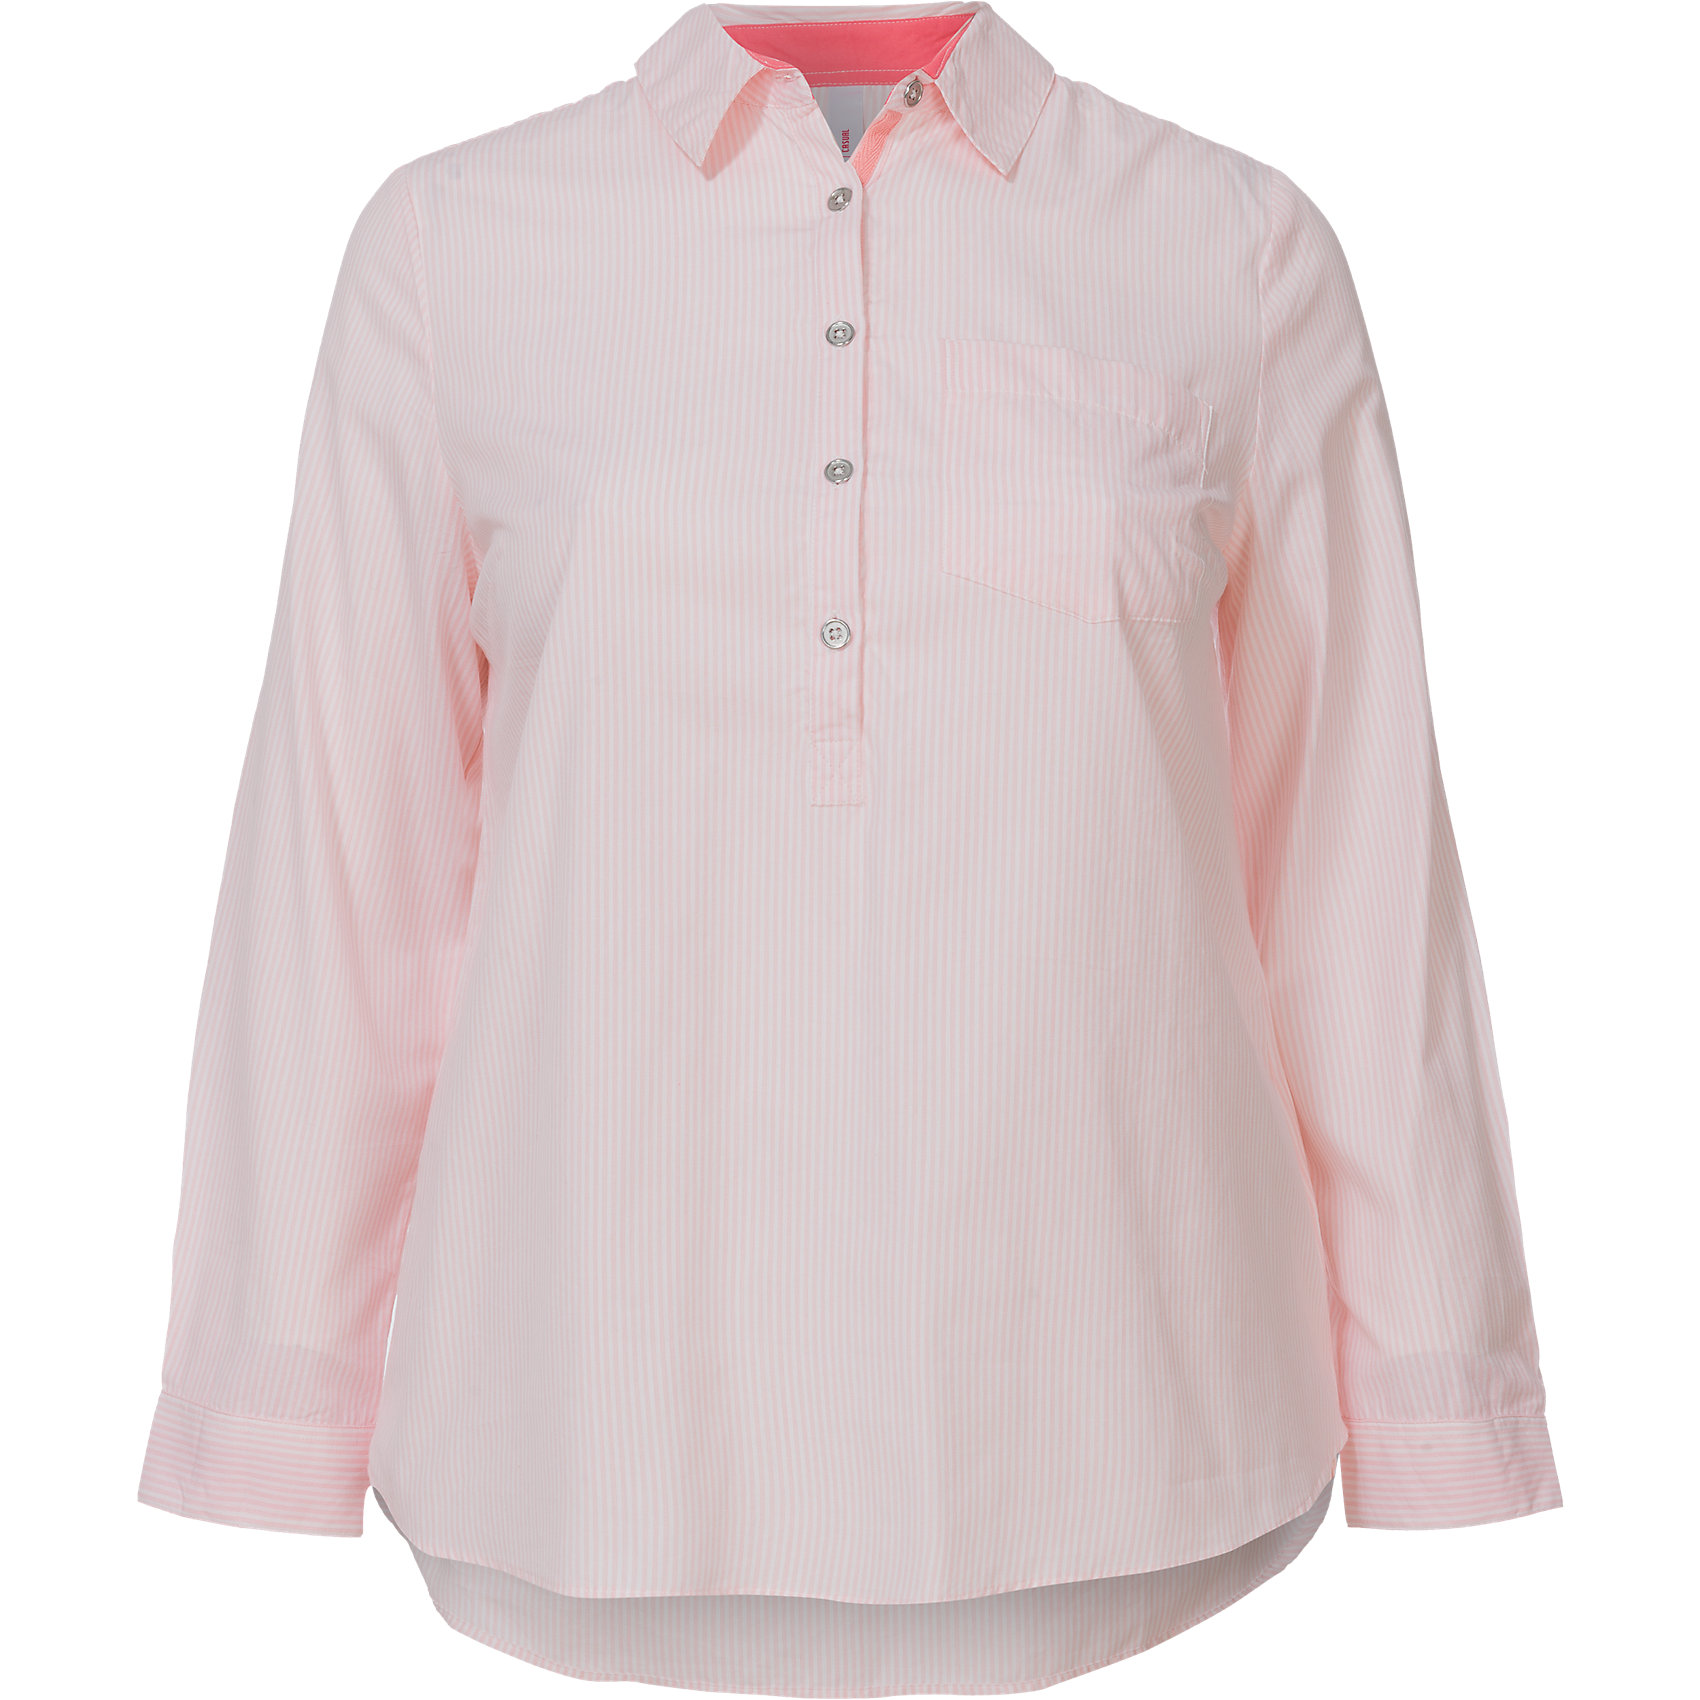 Neu-sheego-Tunika-5633716-Shirt-fuer-Damen-rosa